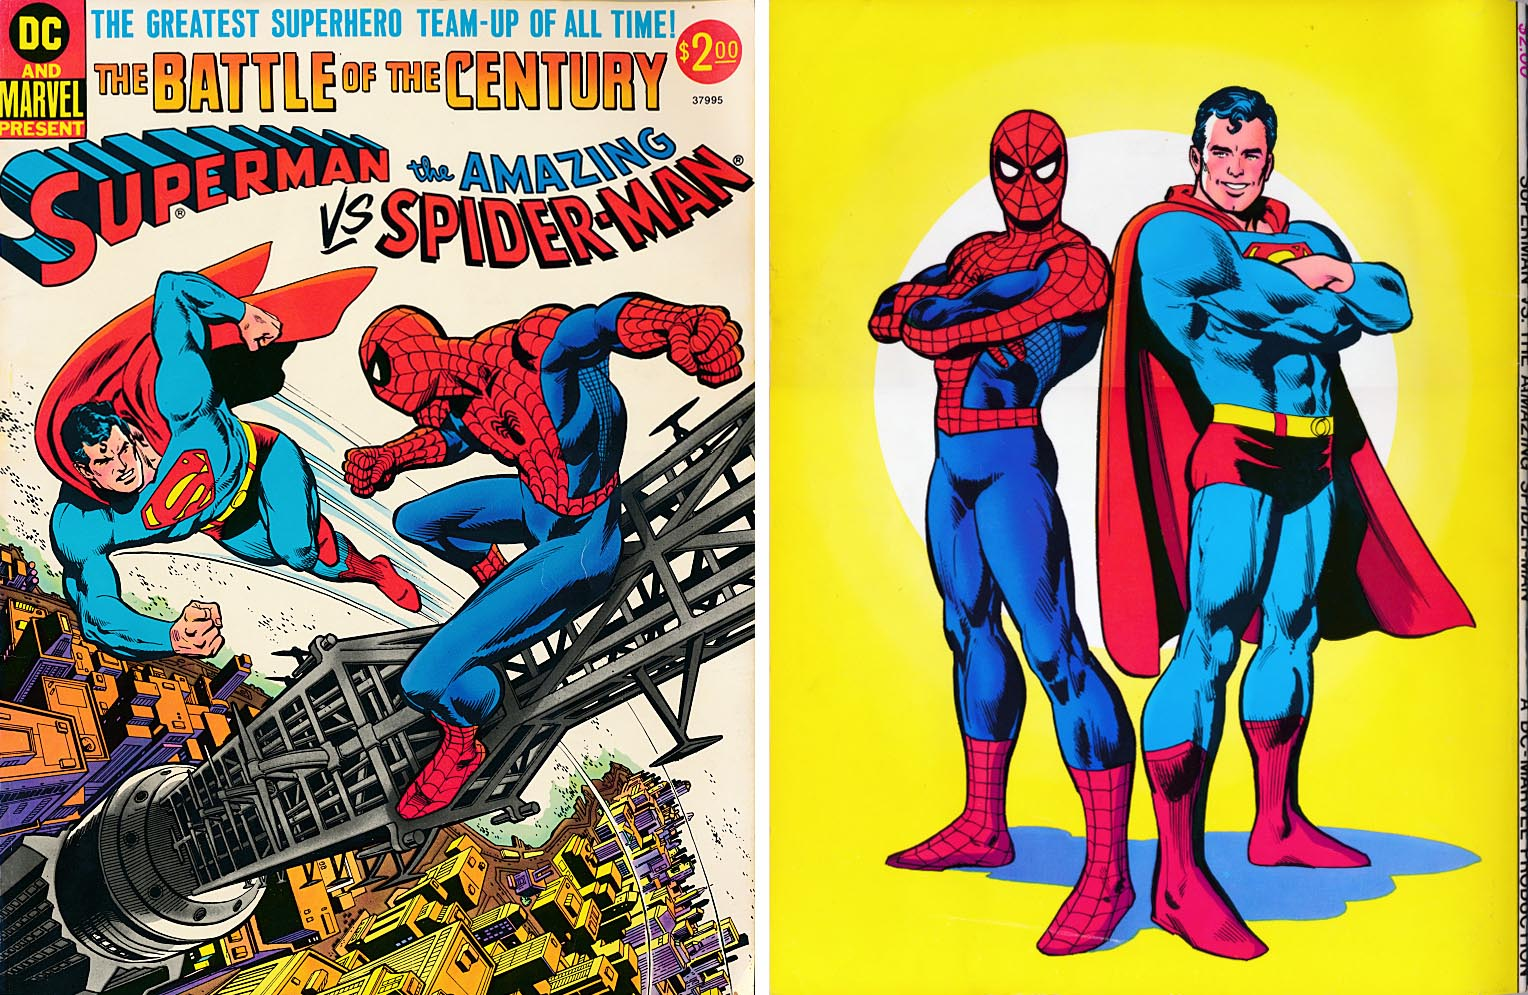 Superman Vs The Amazing Spider-Man (Front & Back Covers)